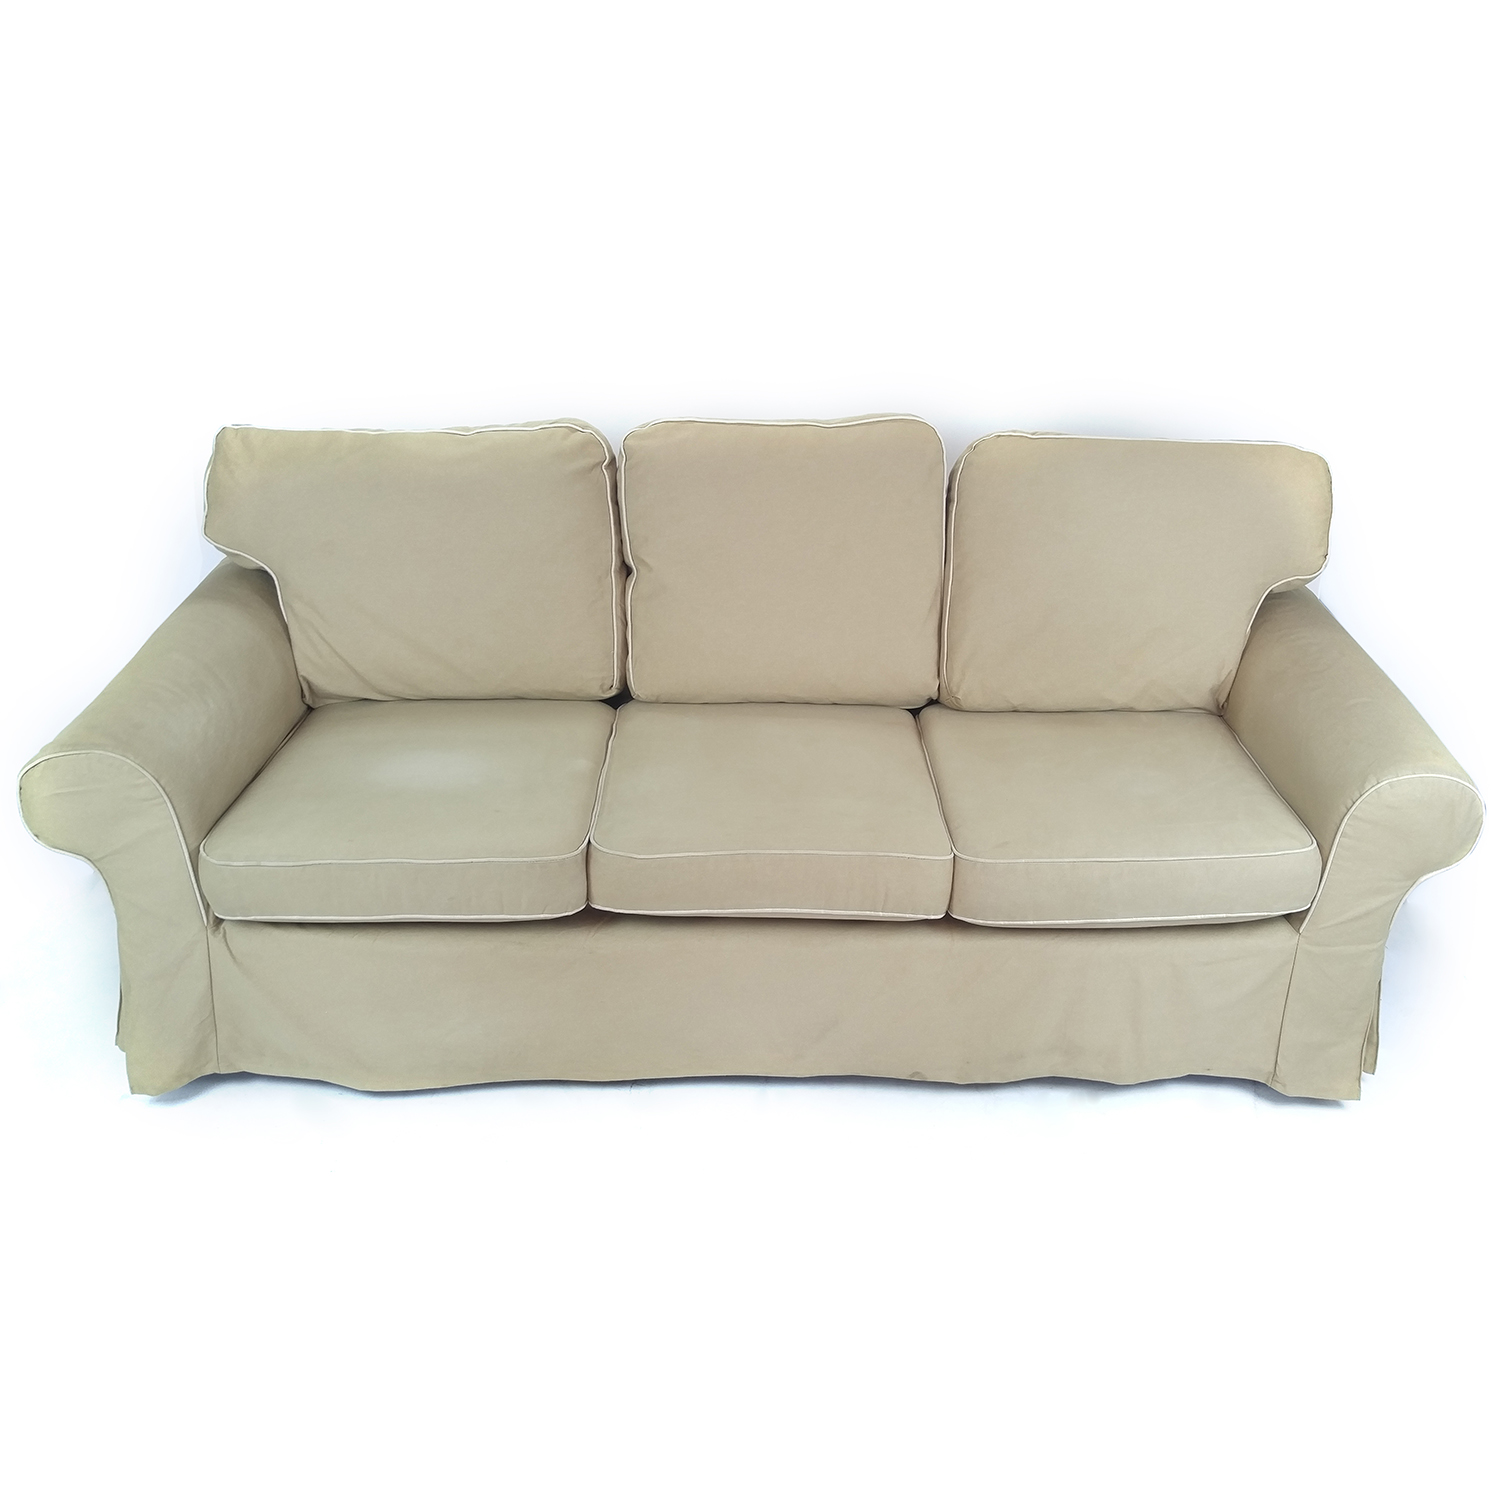 65 off ethan allen ethan allen paisley cushioned sofa for Classic sofa